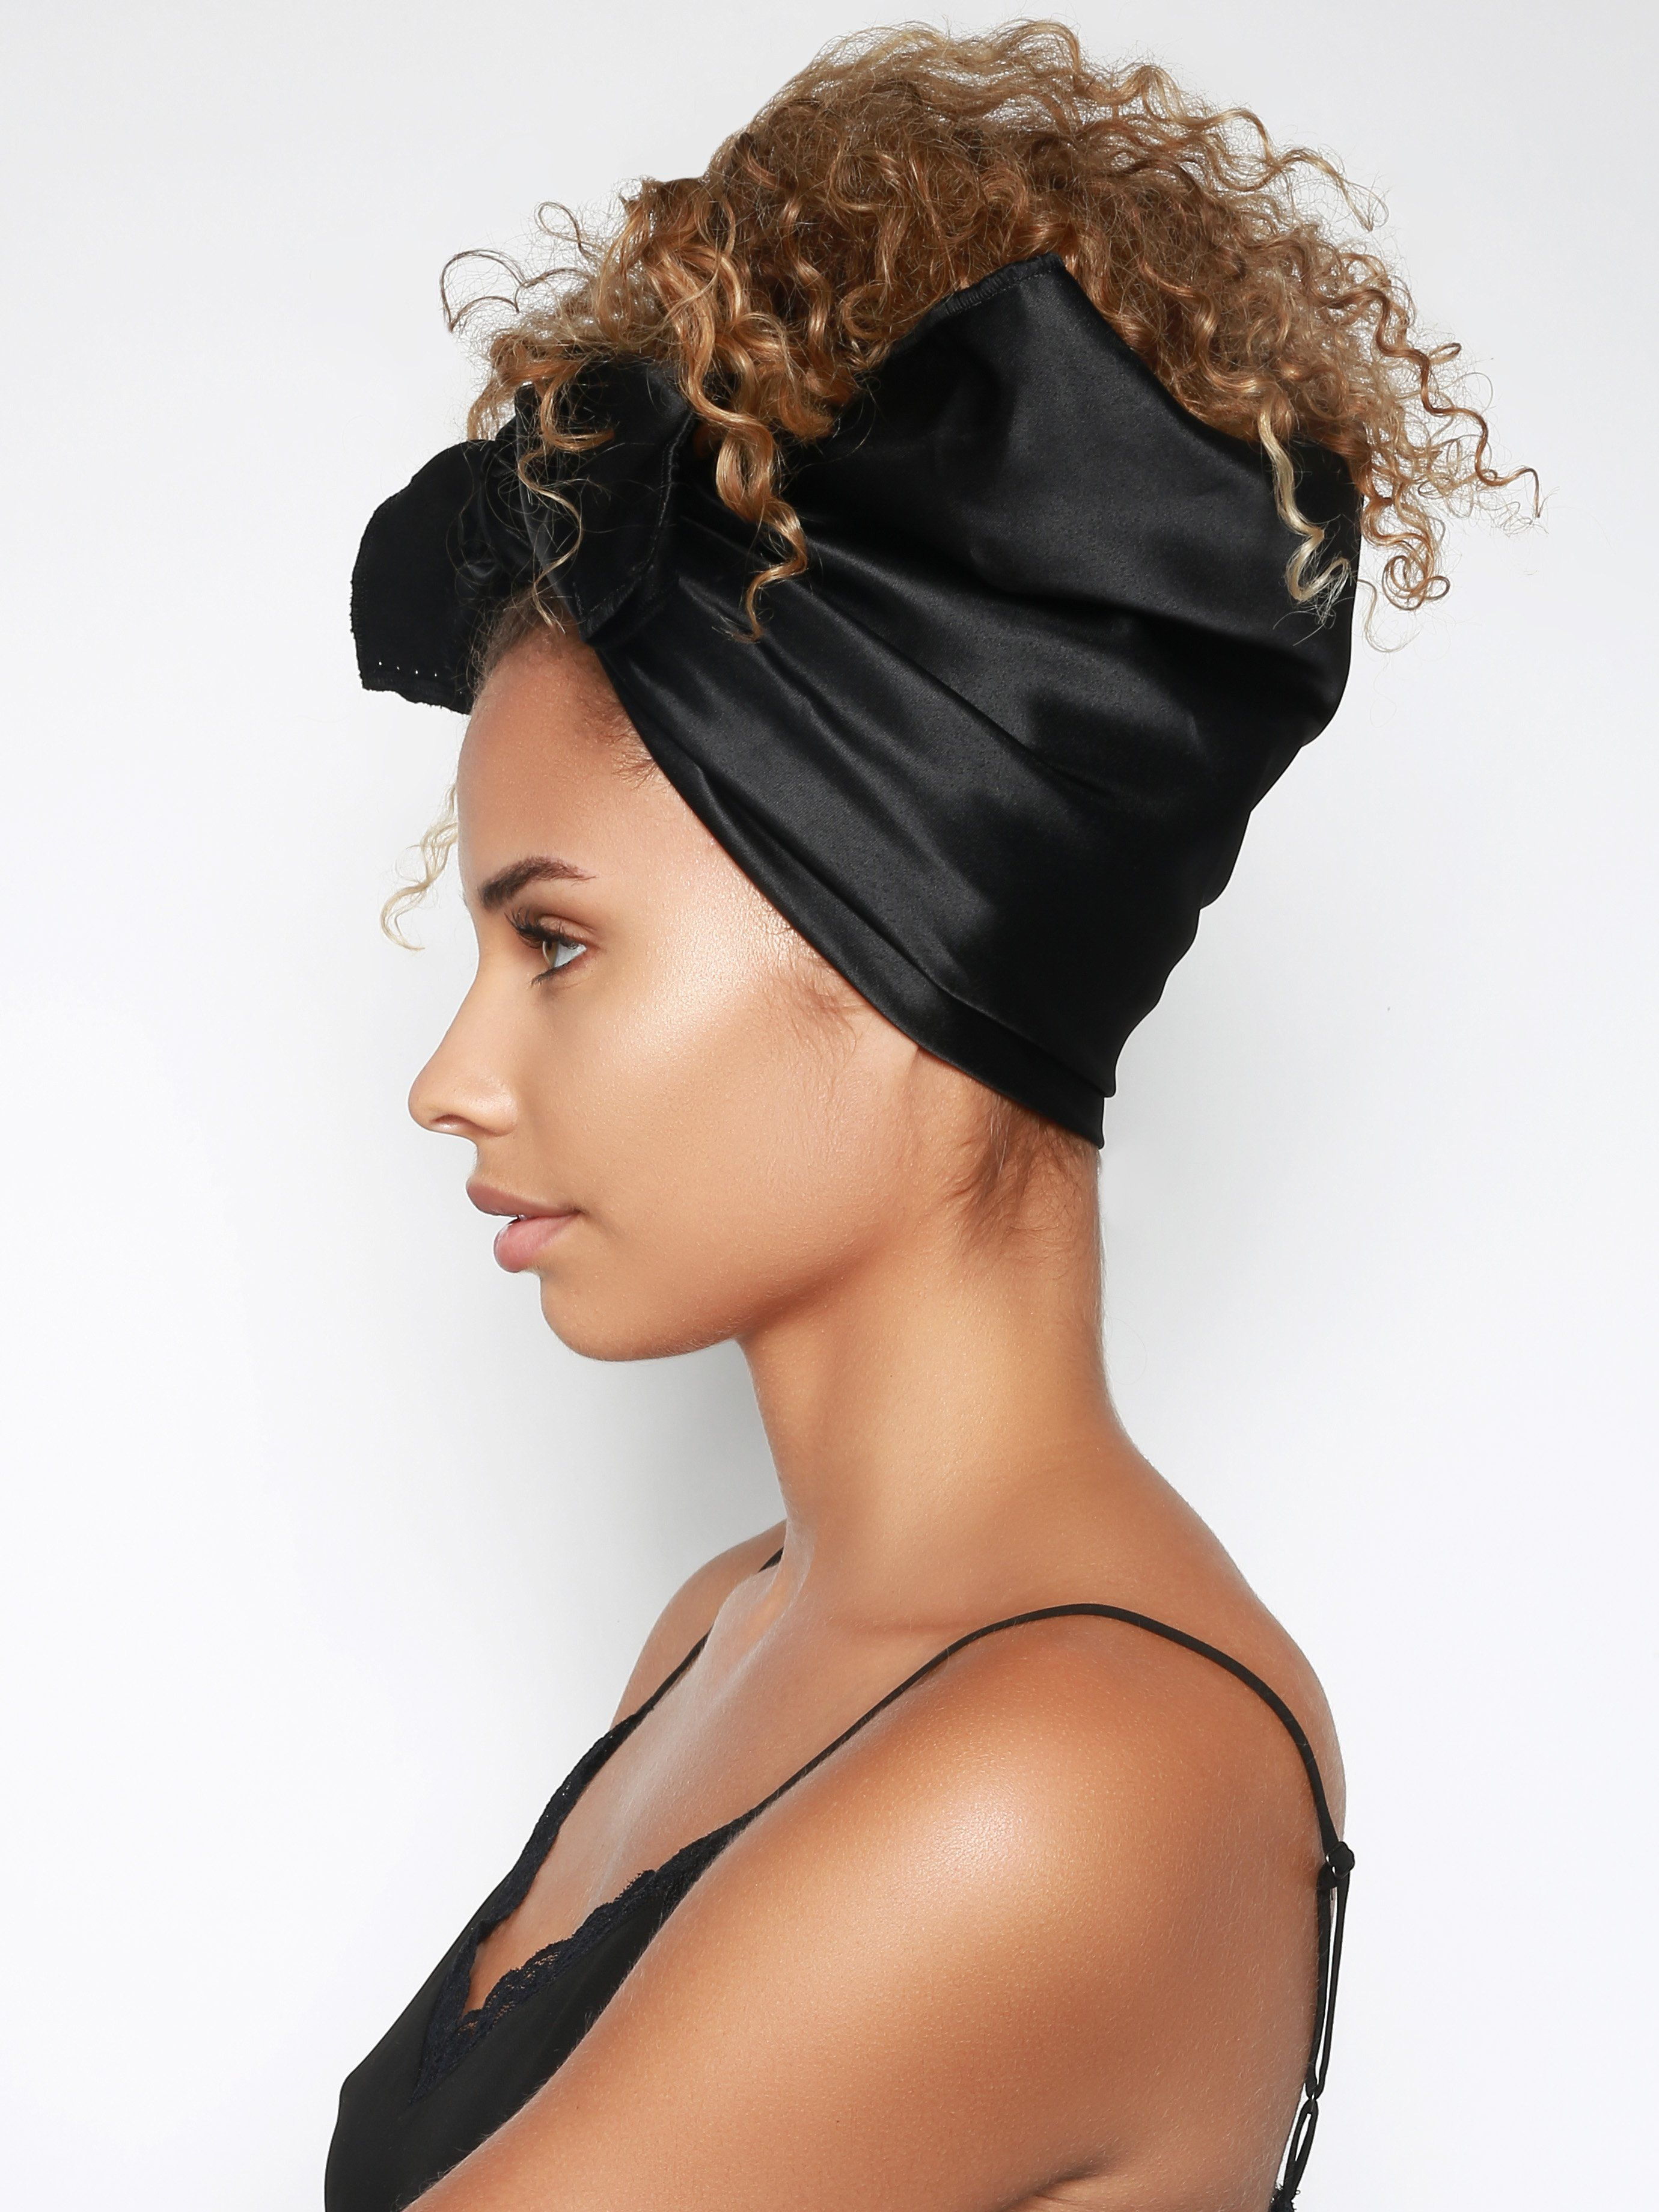 36+ Silk scarf for hair at night inspirations